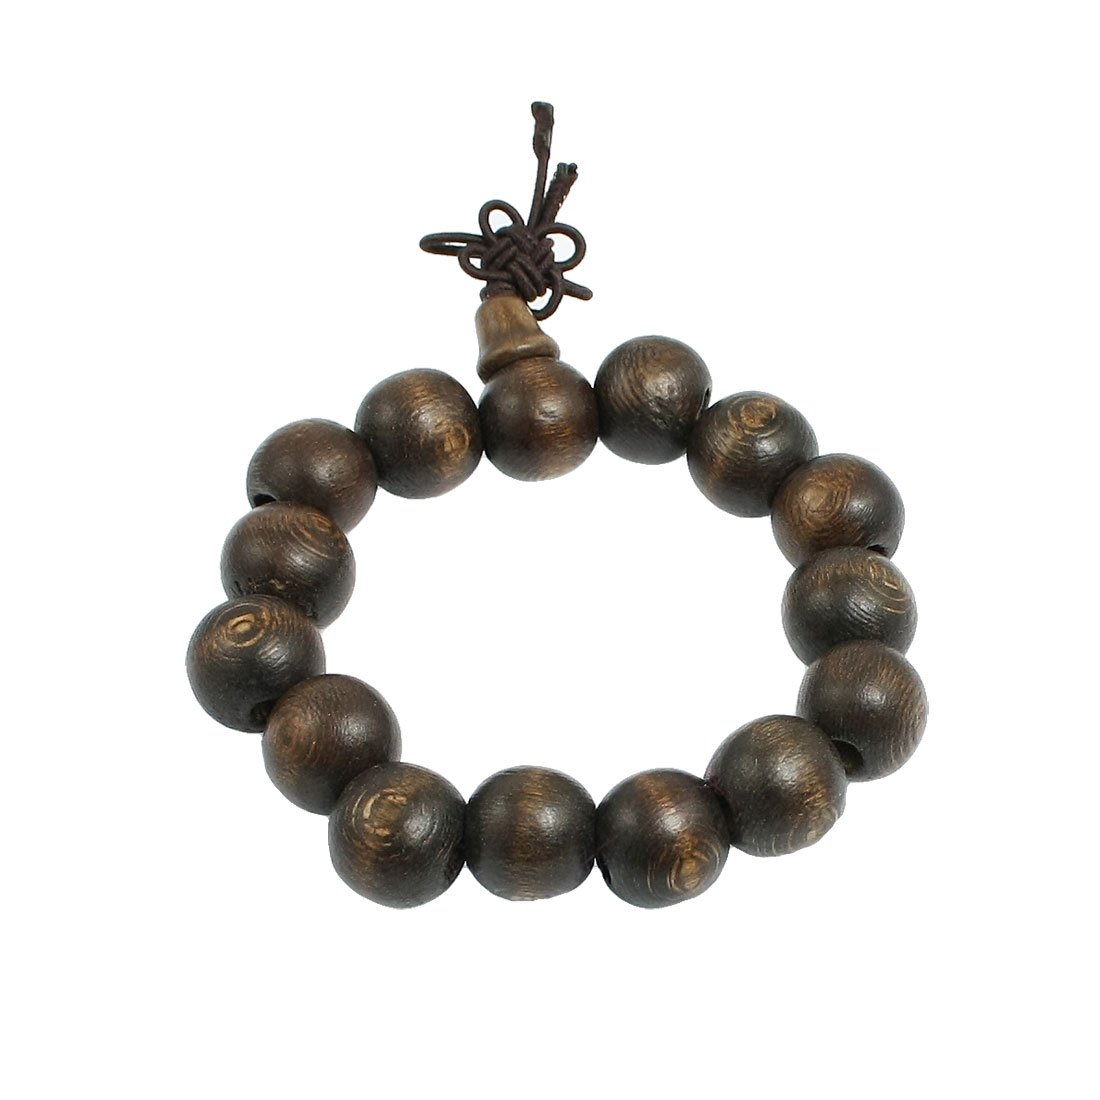 Brown Wood Beads Chinese Words Print Buddha Carved Bracelet Bangle 9.8""